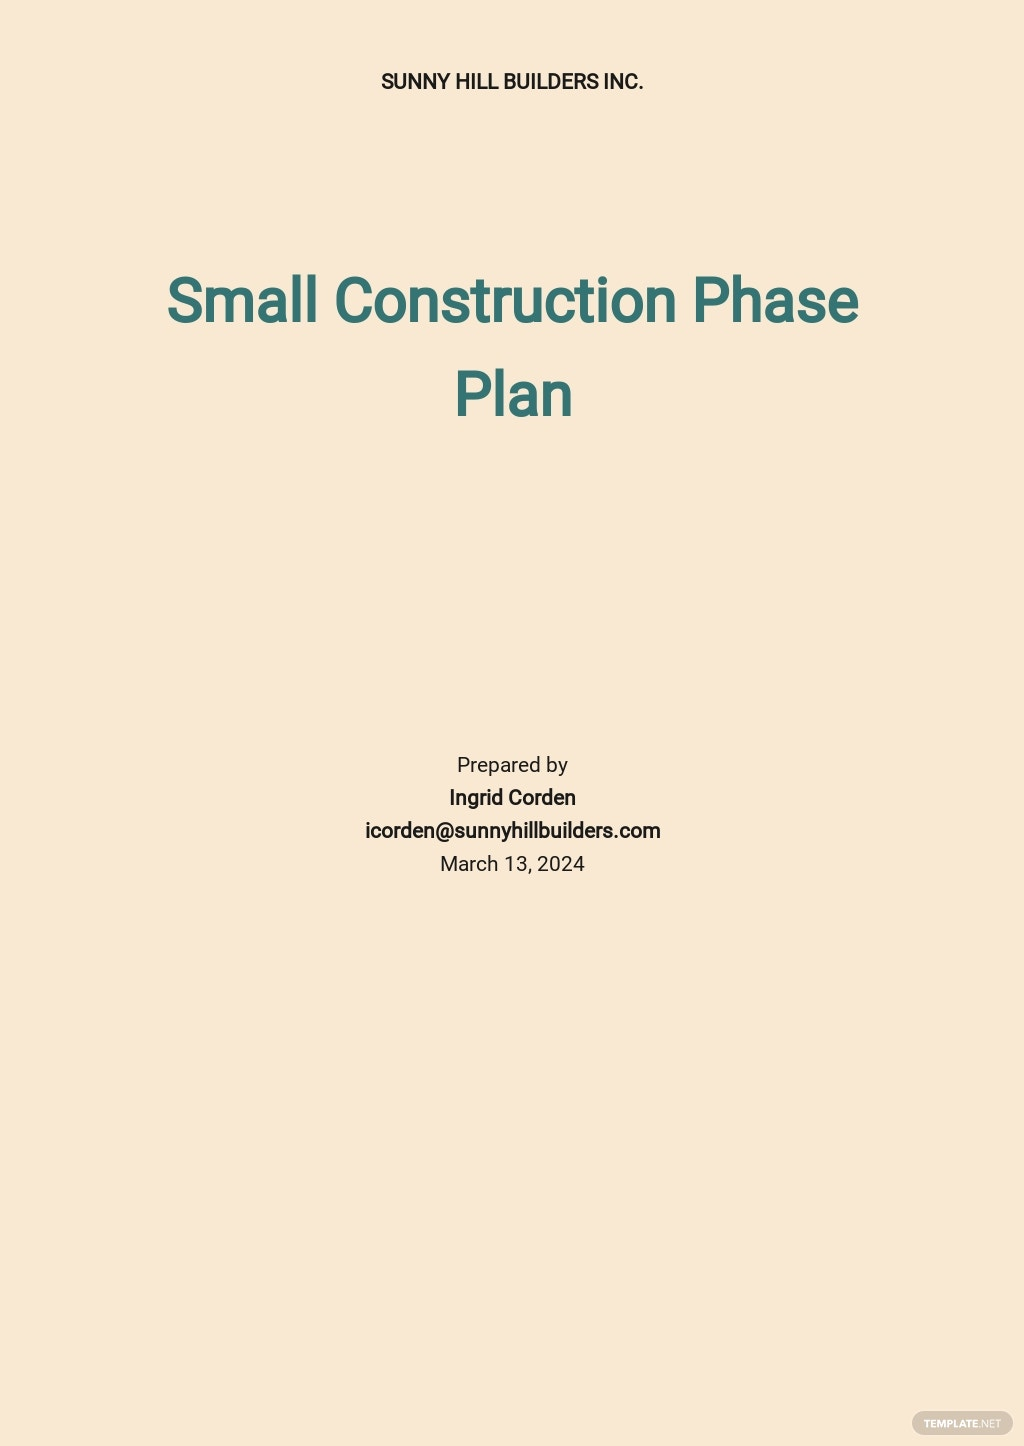 Small Construction Phase Plan Template.jpe